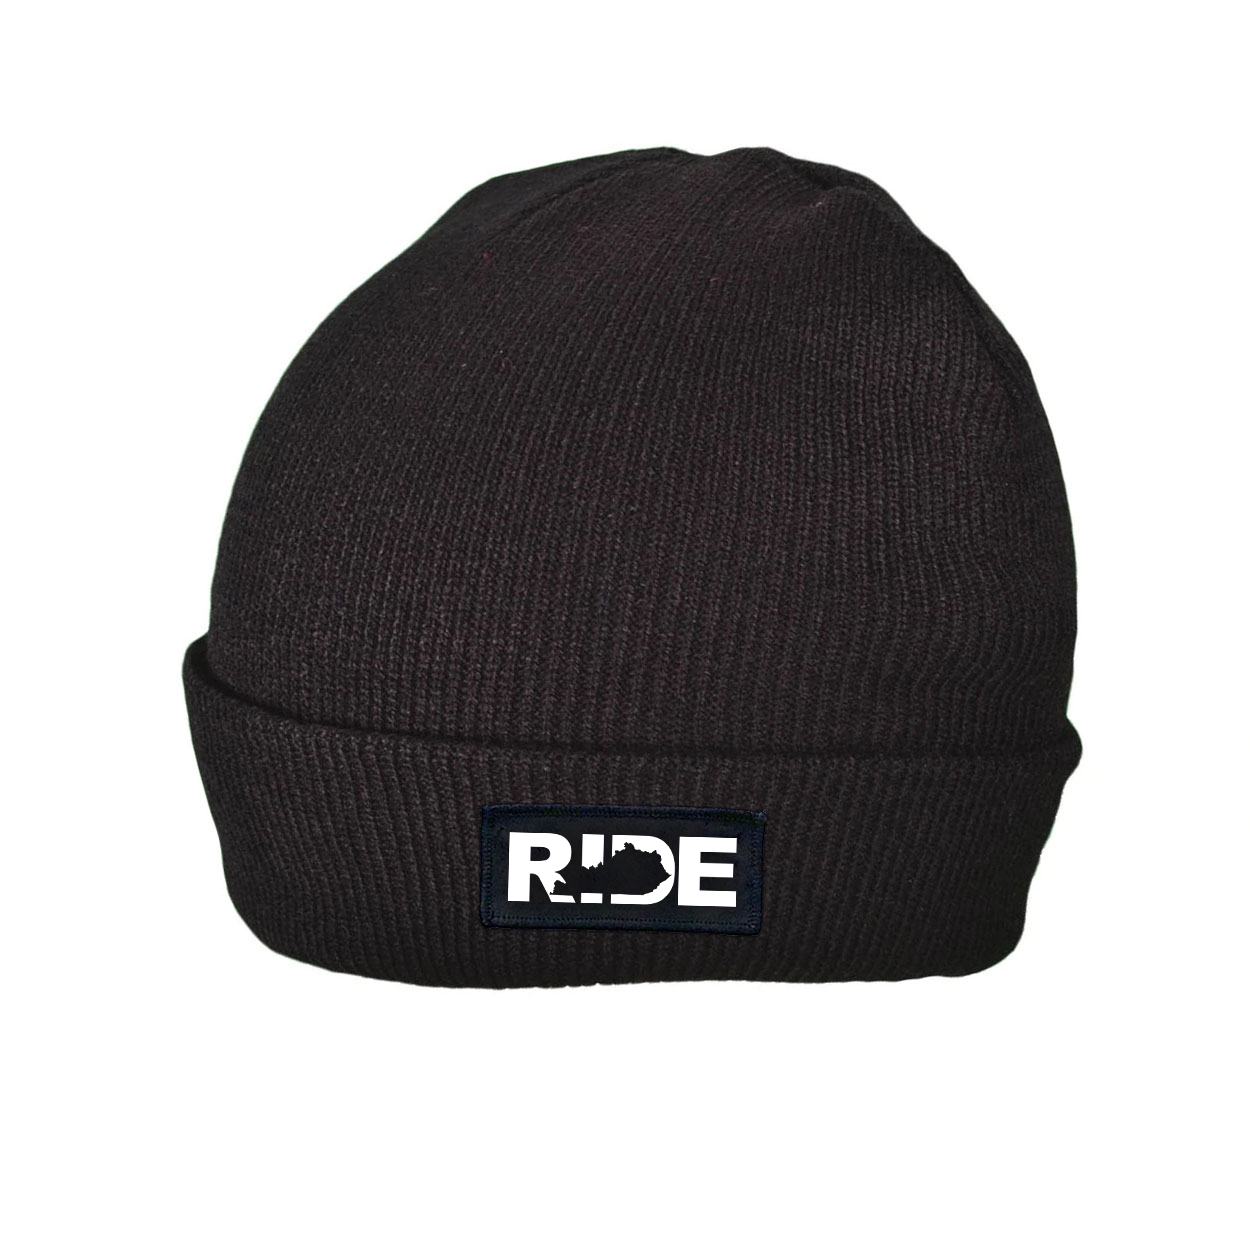 Ride Kentucky Night Out Woven Patch Roll Up Skully Beanie Black (White Logo)